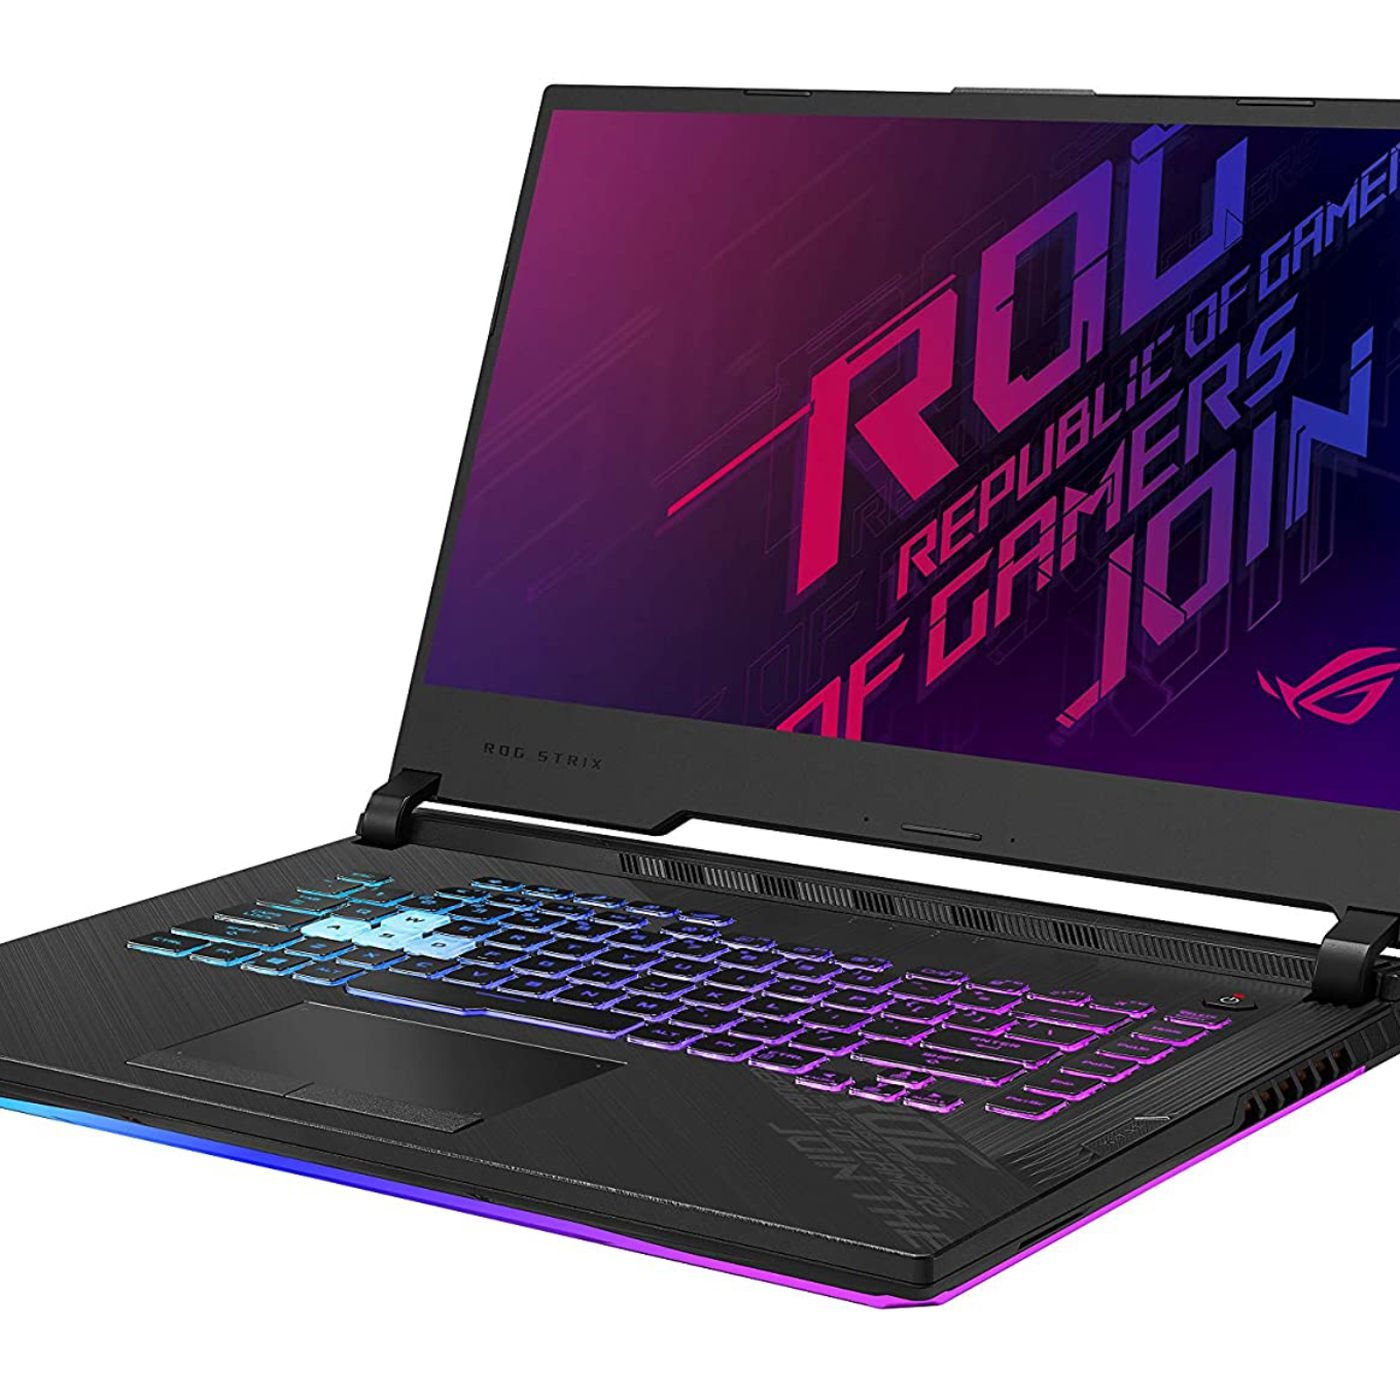 Asus Led Filled Gaming Laptop With A 144hz Refresh Rate Display Costs Just 880 The Verge